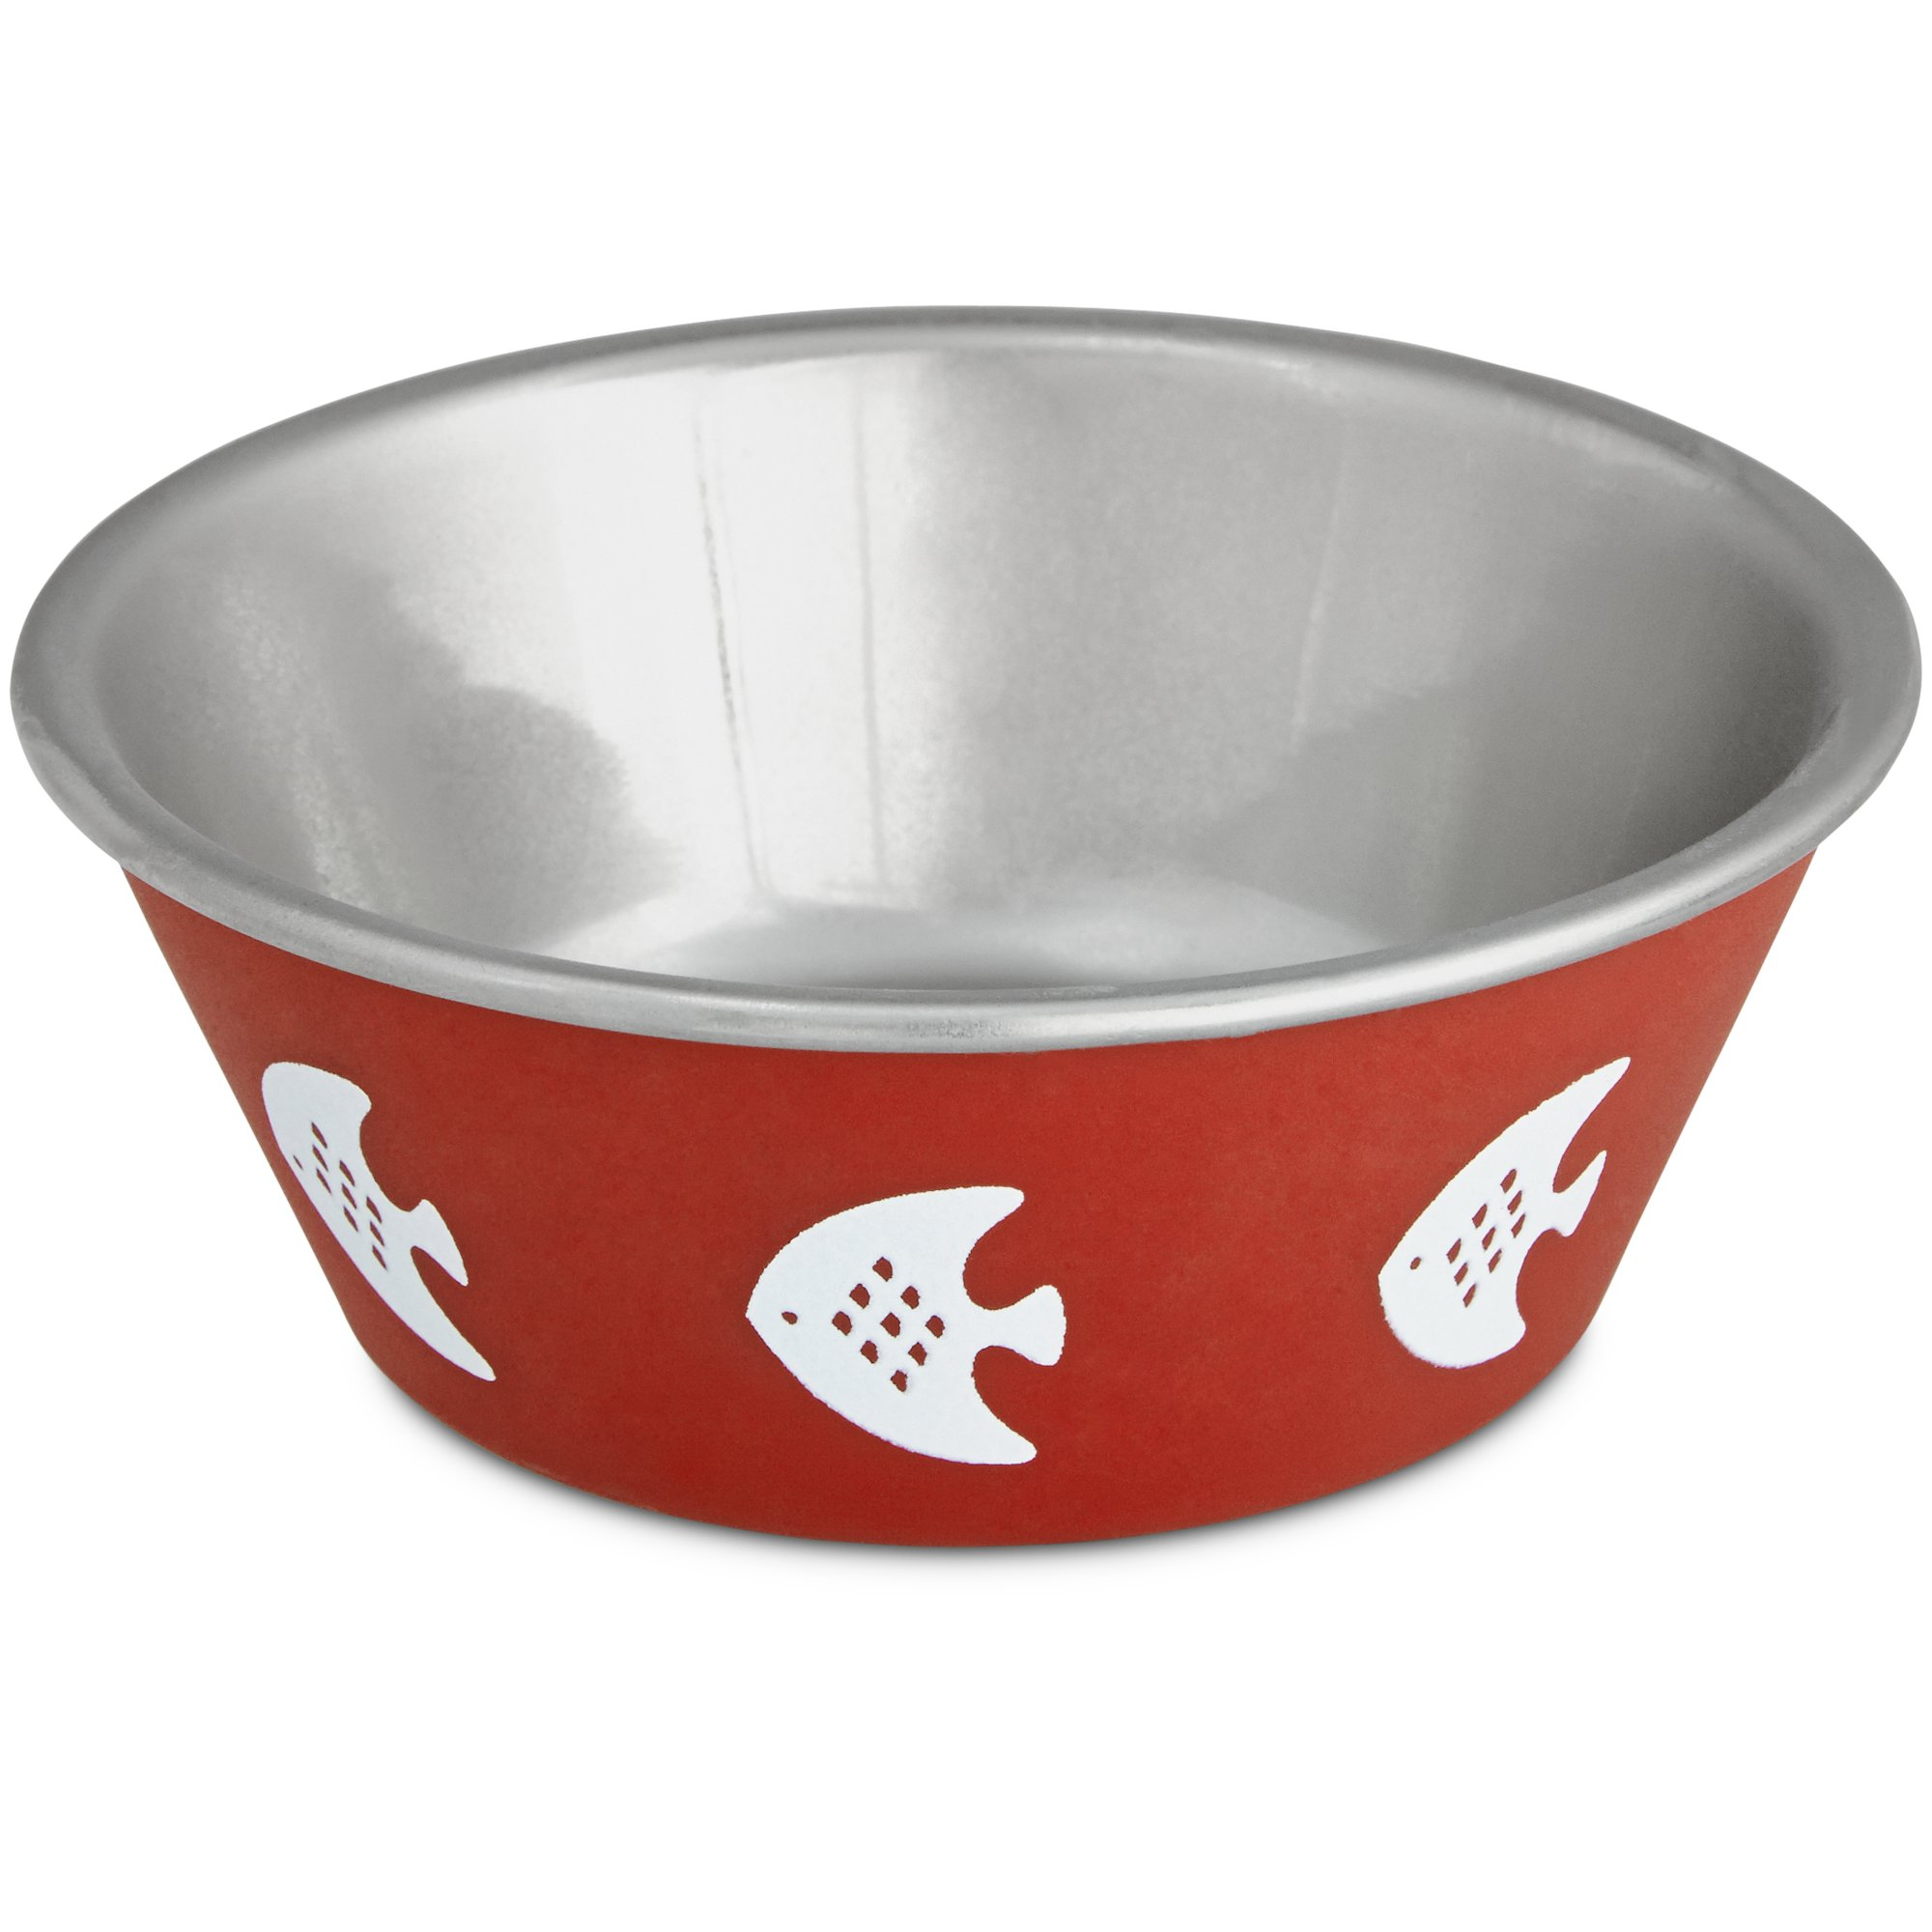 Harmony Red Fish Stainless Steel Cat Bowl Petco